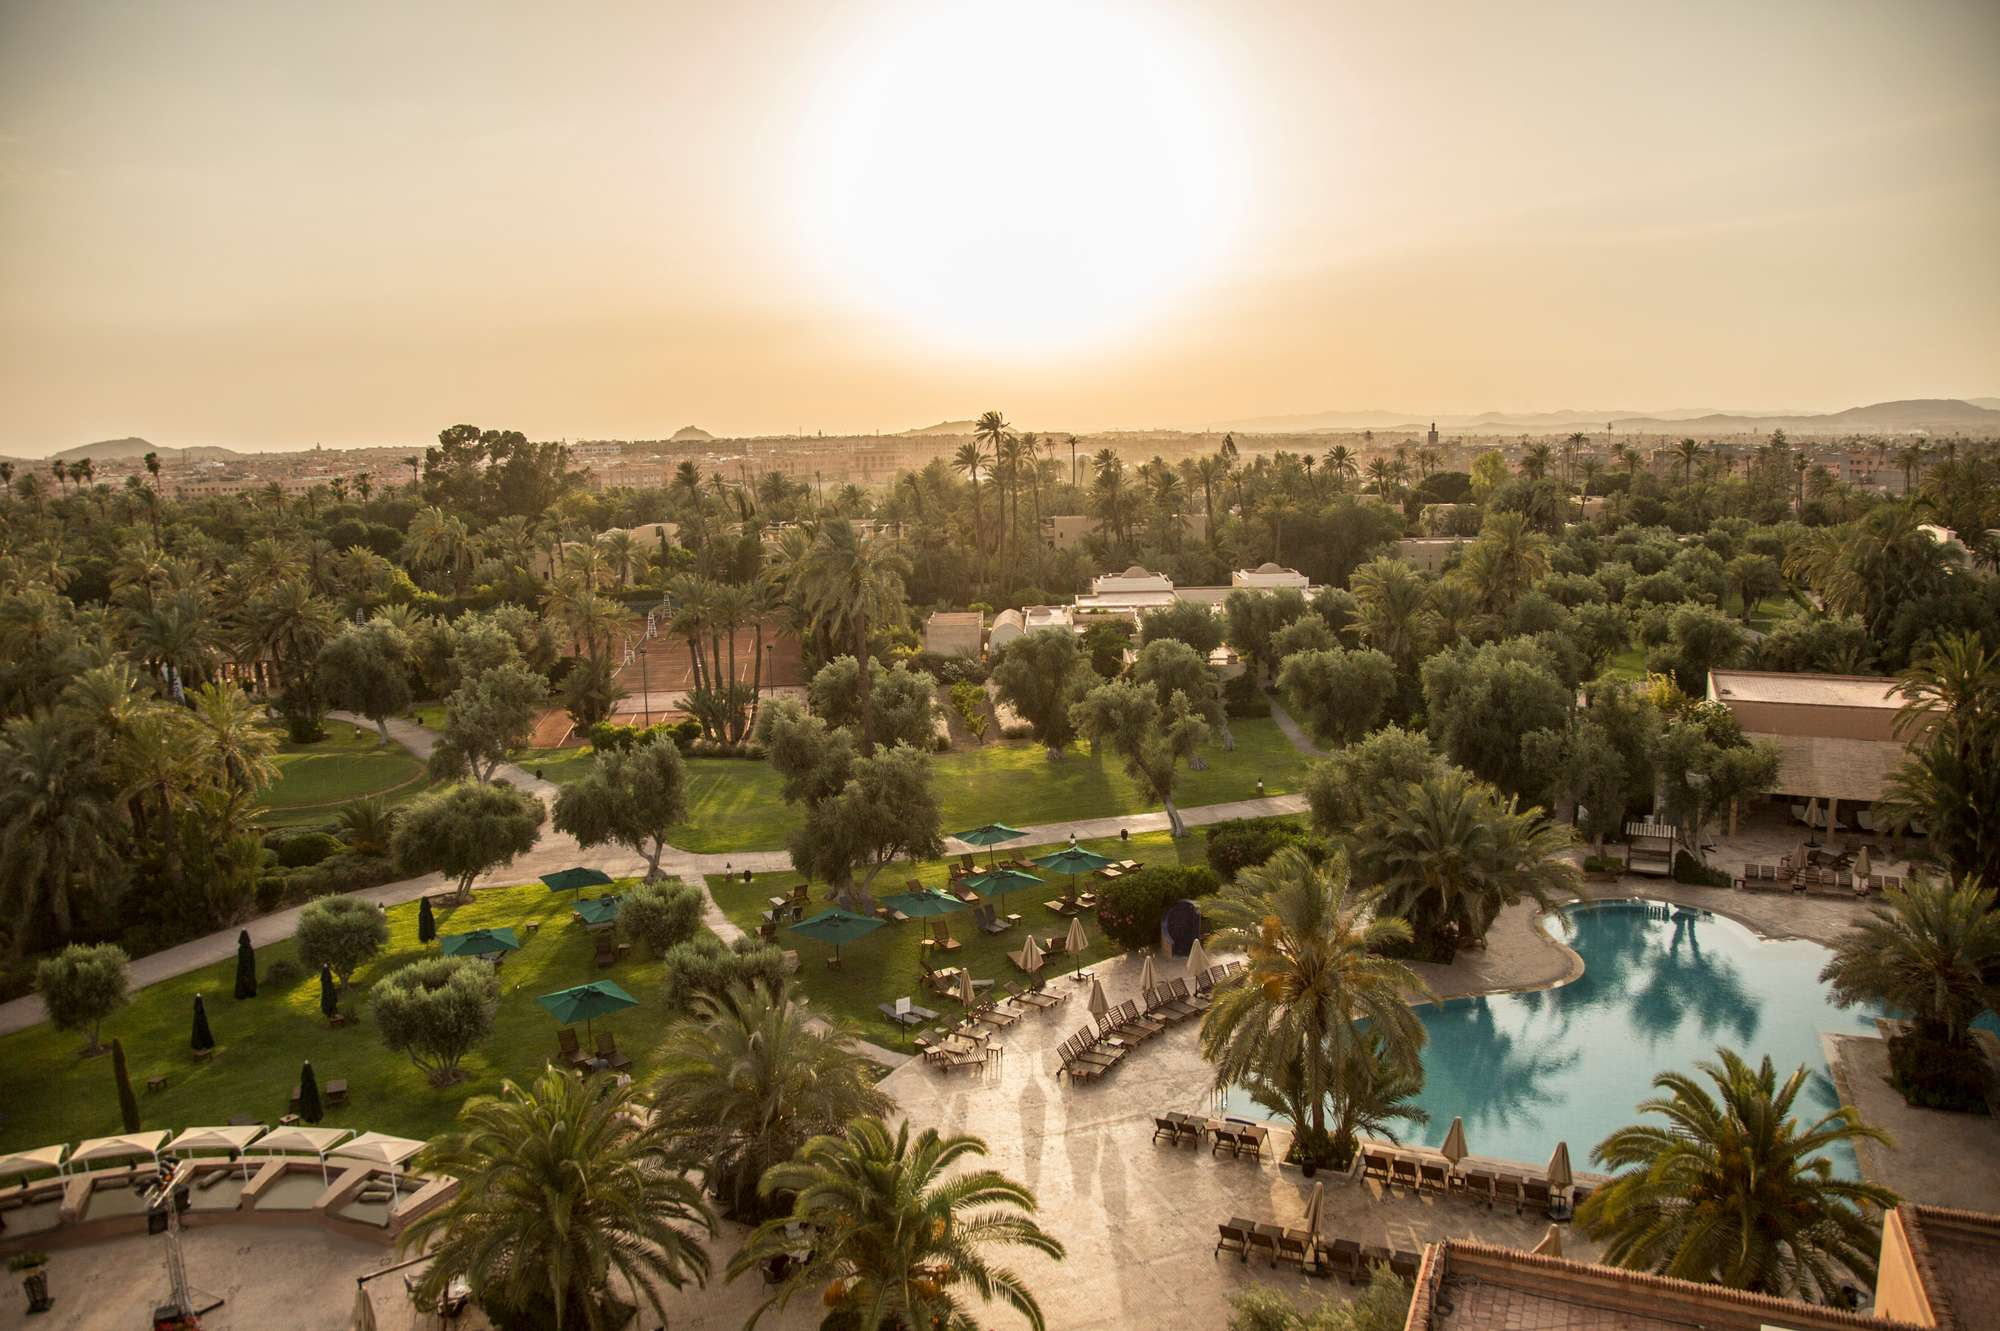 https_ns.clubmed.comicp1-MEDIA01.VILLAGES1.2CAMPAGNEMARRAKECHMARRAKECH-LA-PALMERAIE57-PHOTOSMPACE114002